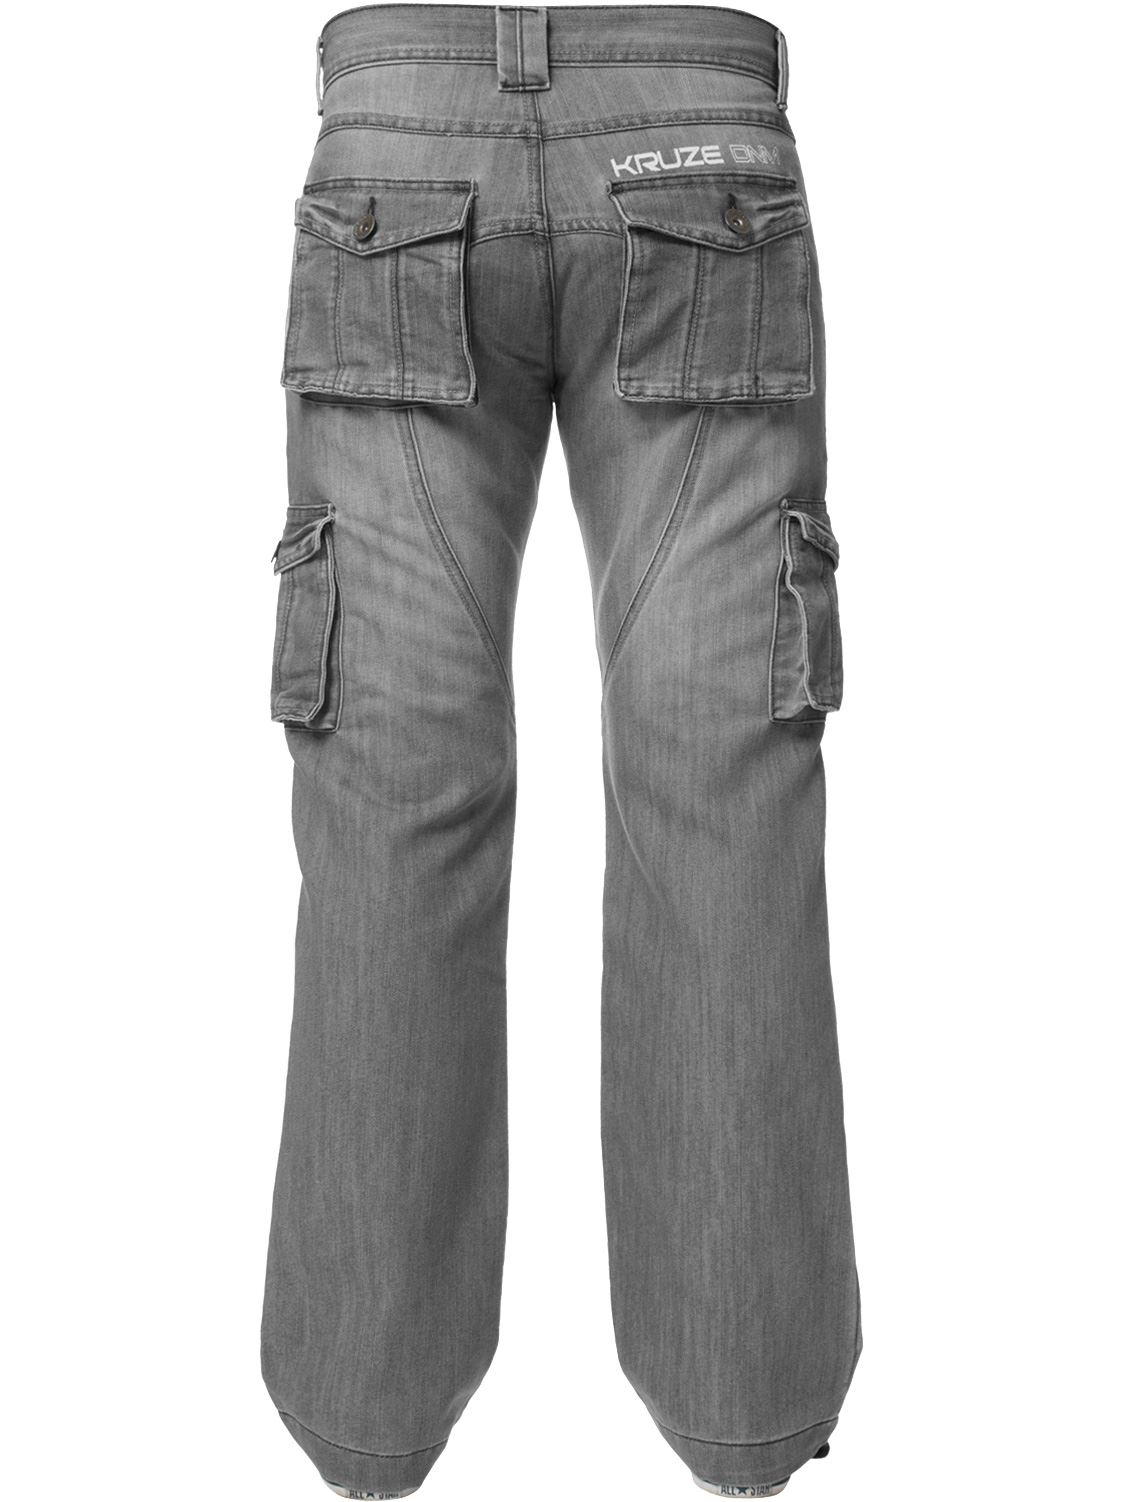 Kruze-Mens-Cargo-Combat-Jeans-Casual-Work-Denim-Pants-Big-Tall-All-Waist-Sizes thumbnail 32